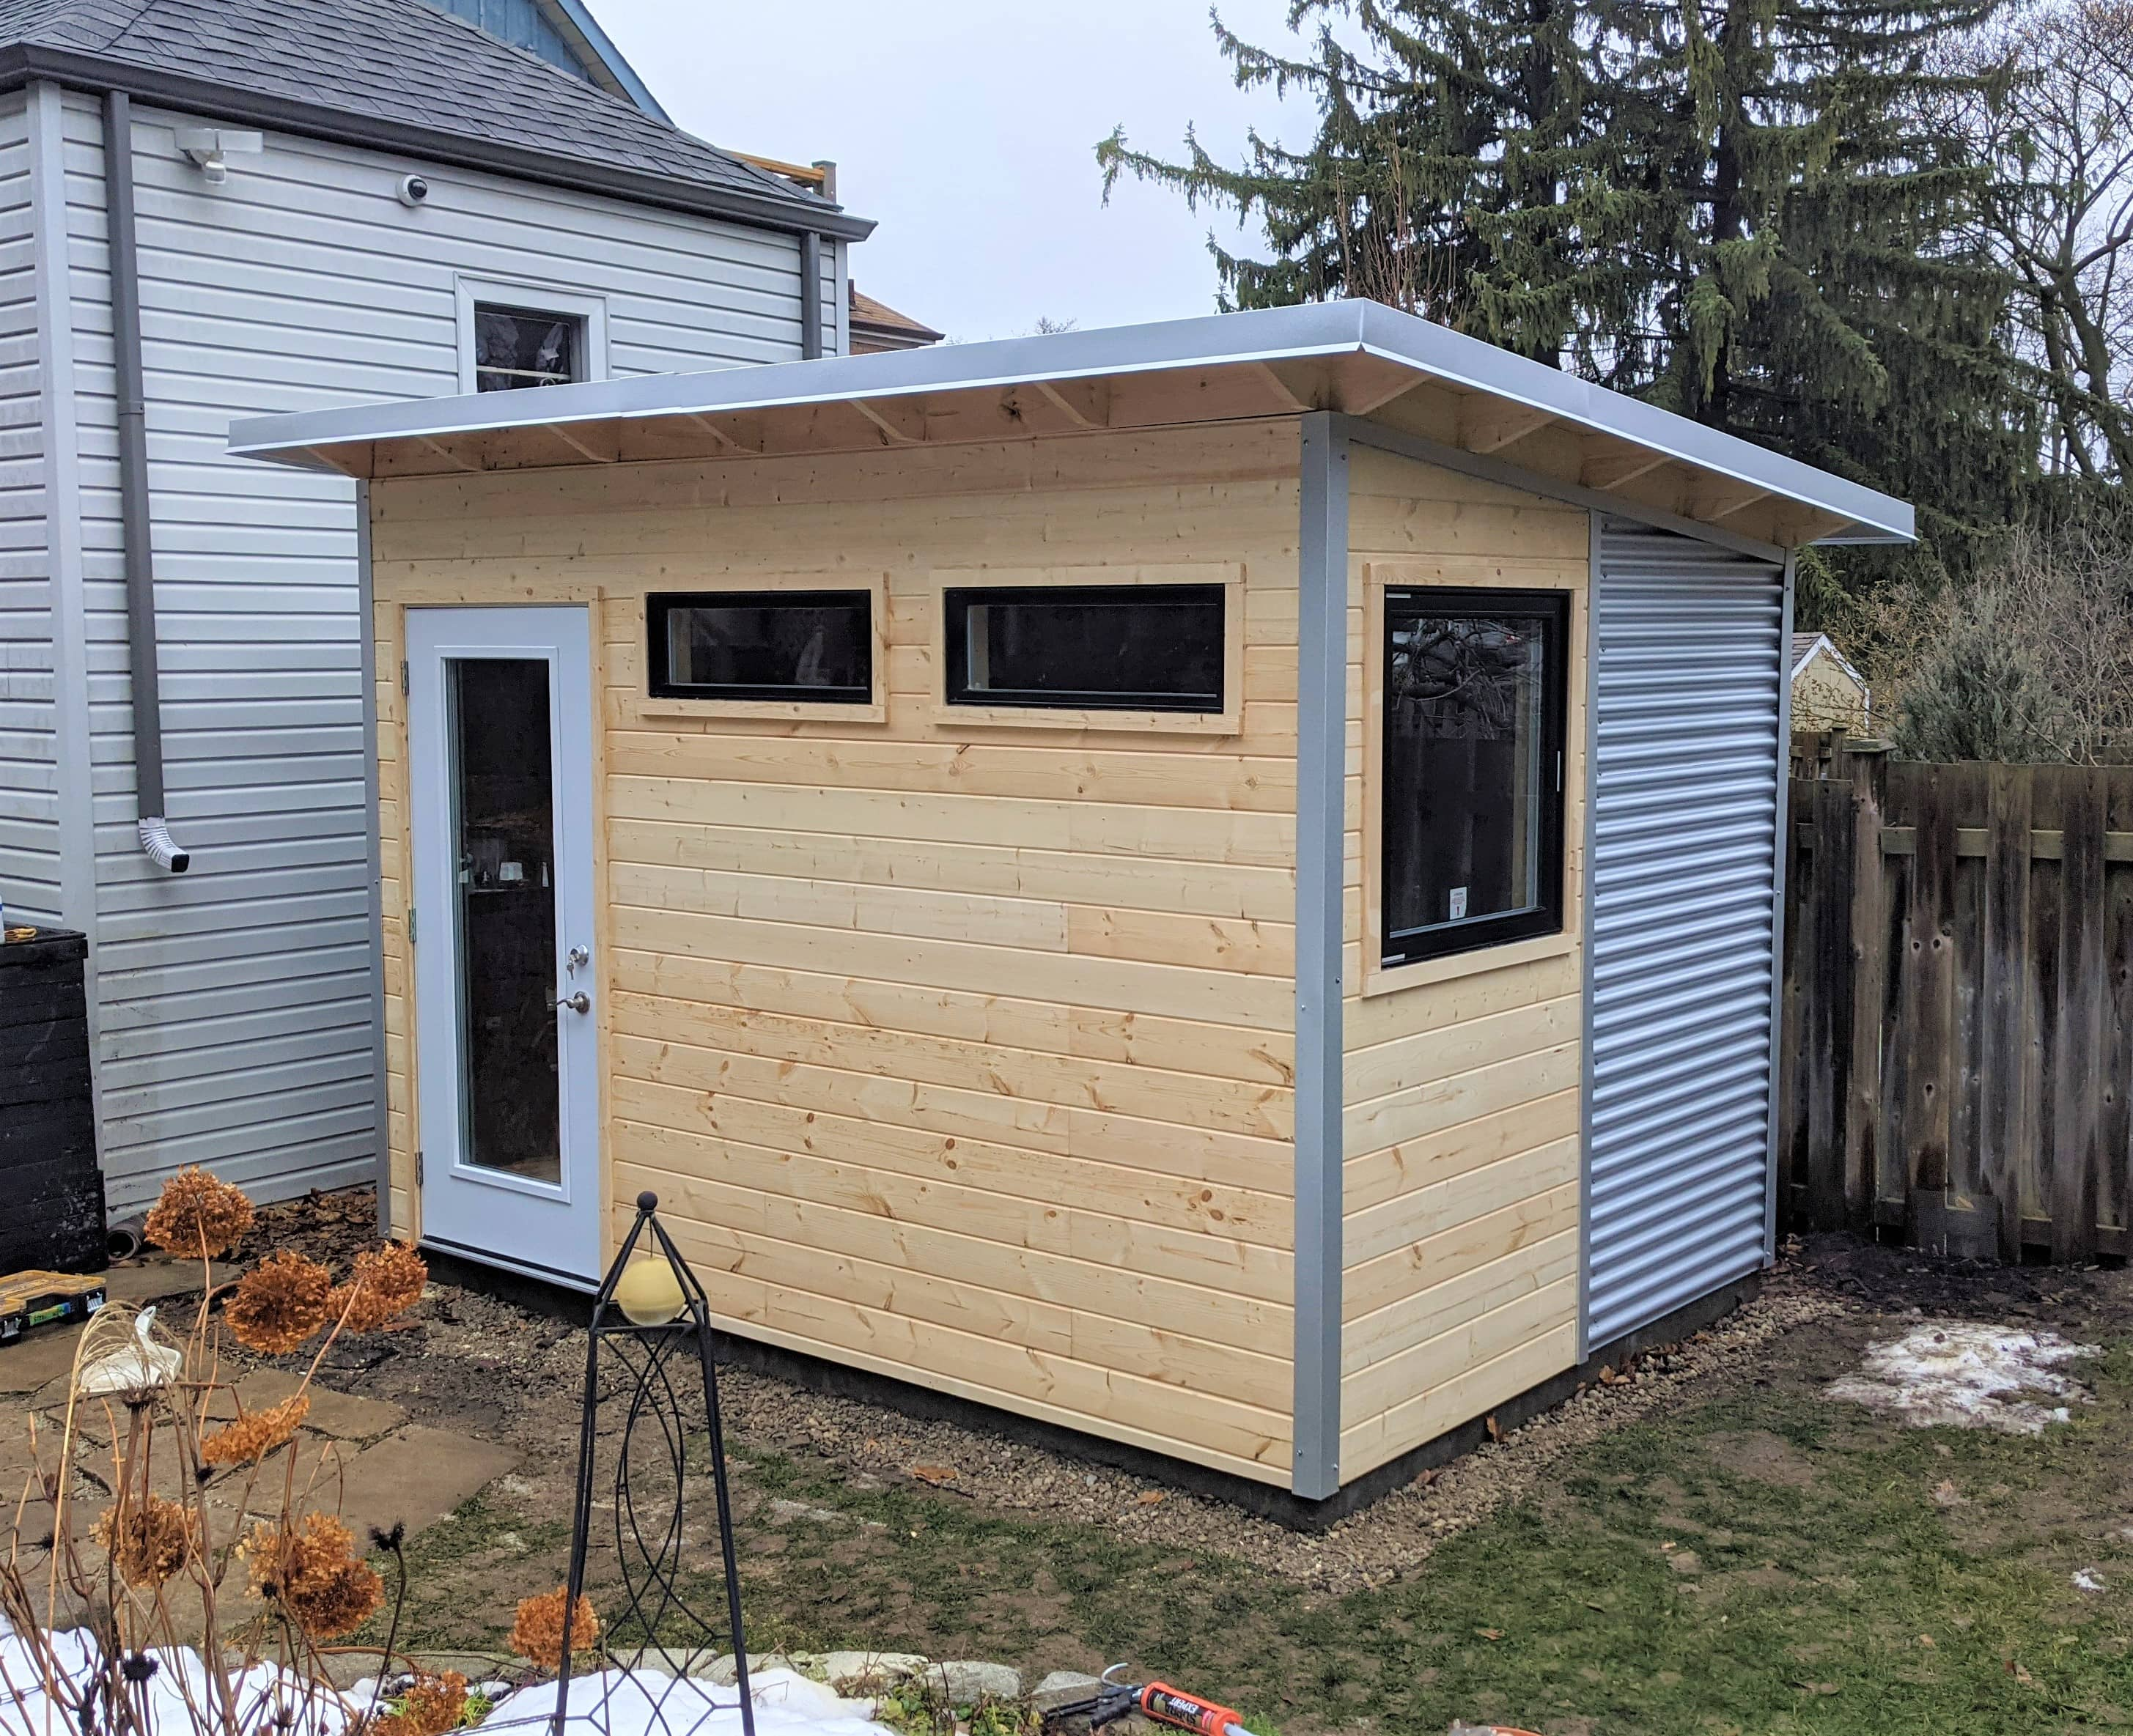 12' x 8' Custom Essential Shed with Clear-coated Pine and Galvalume Steel